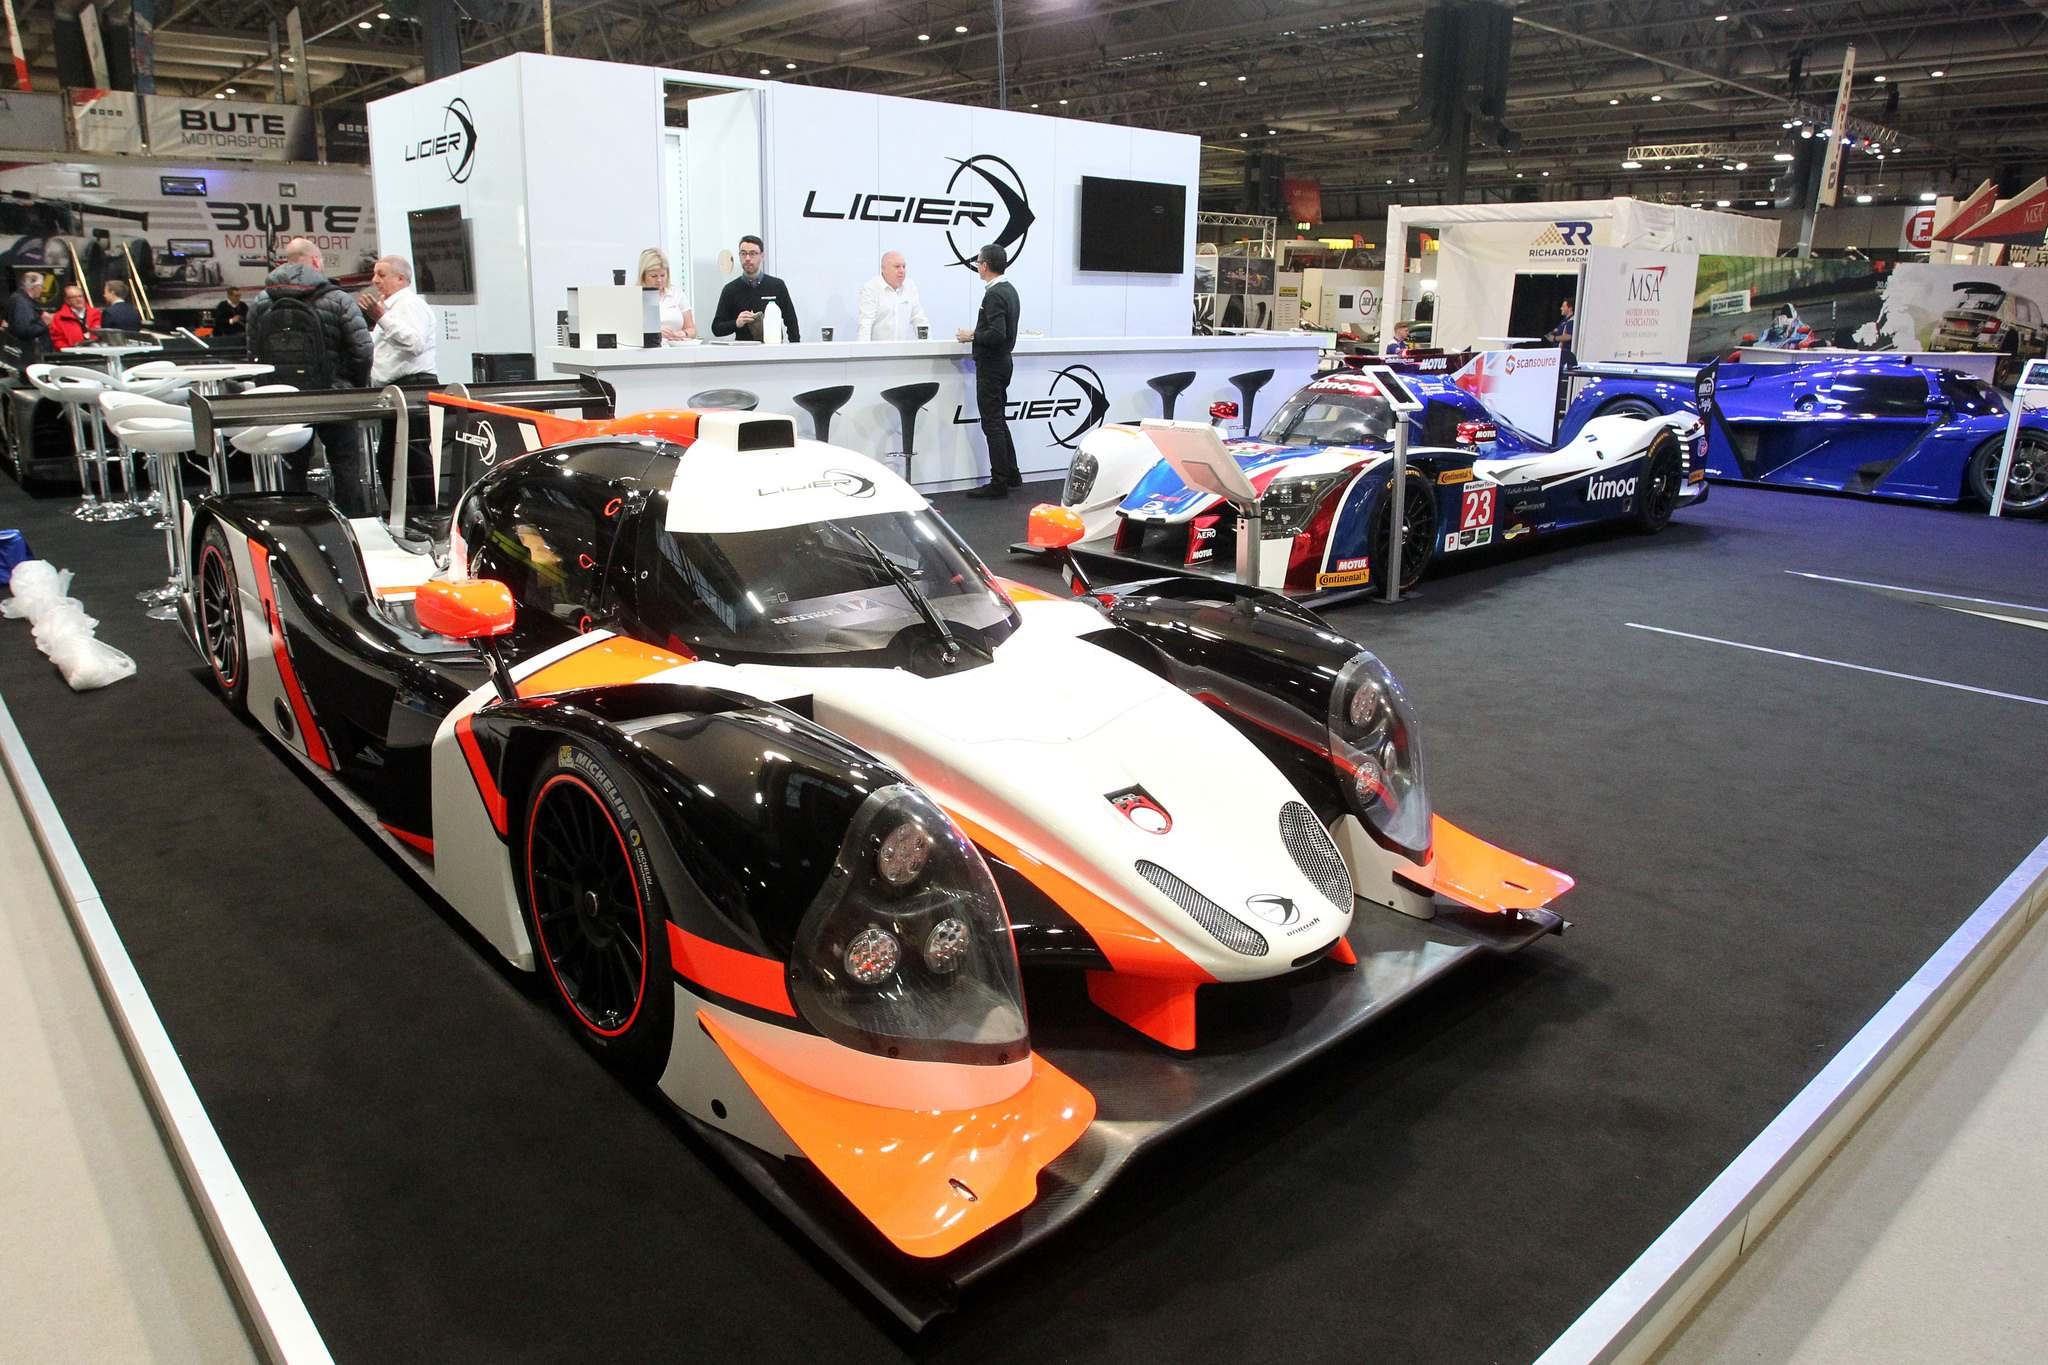 ligier 201810 Ligier at Autosport International Show 2018